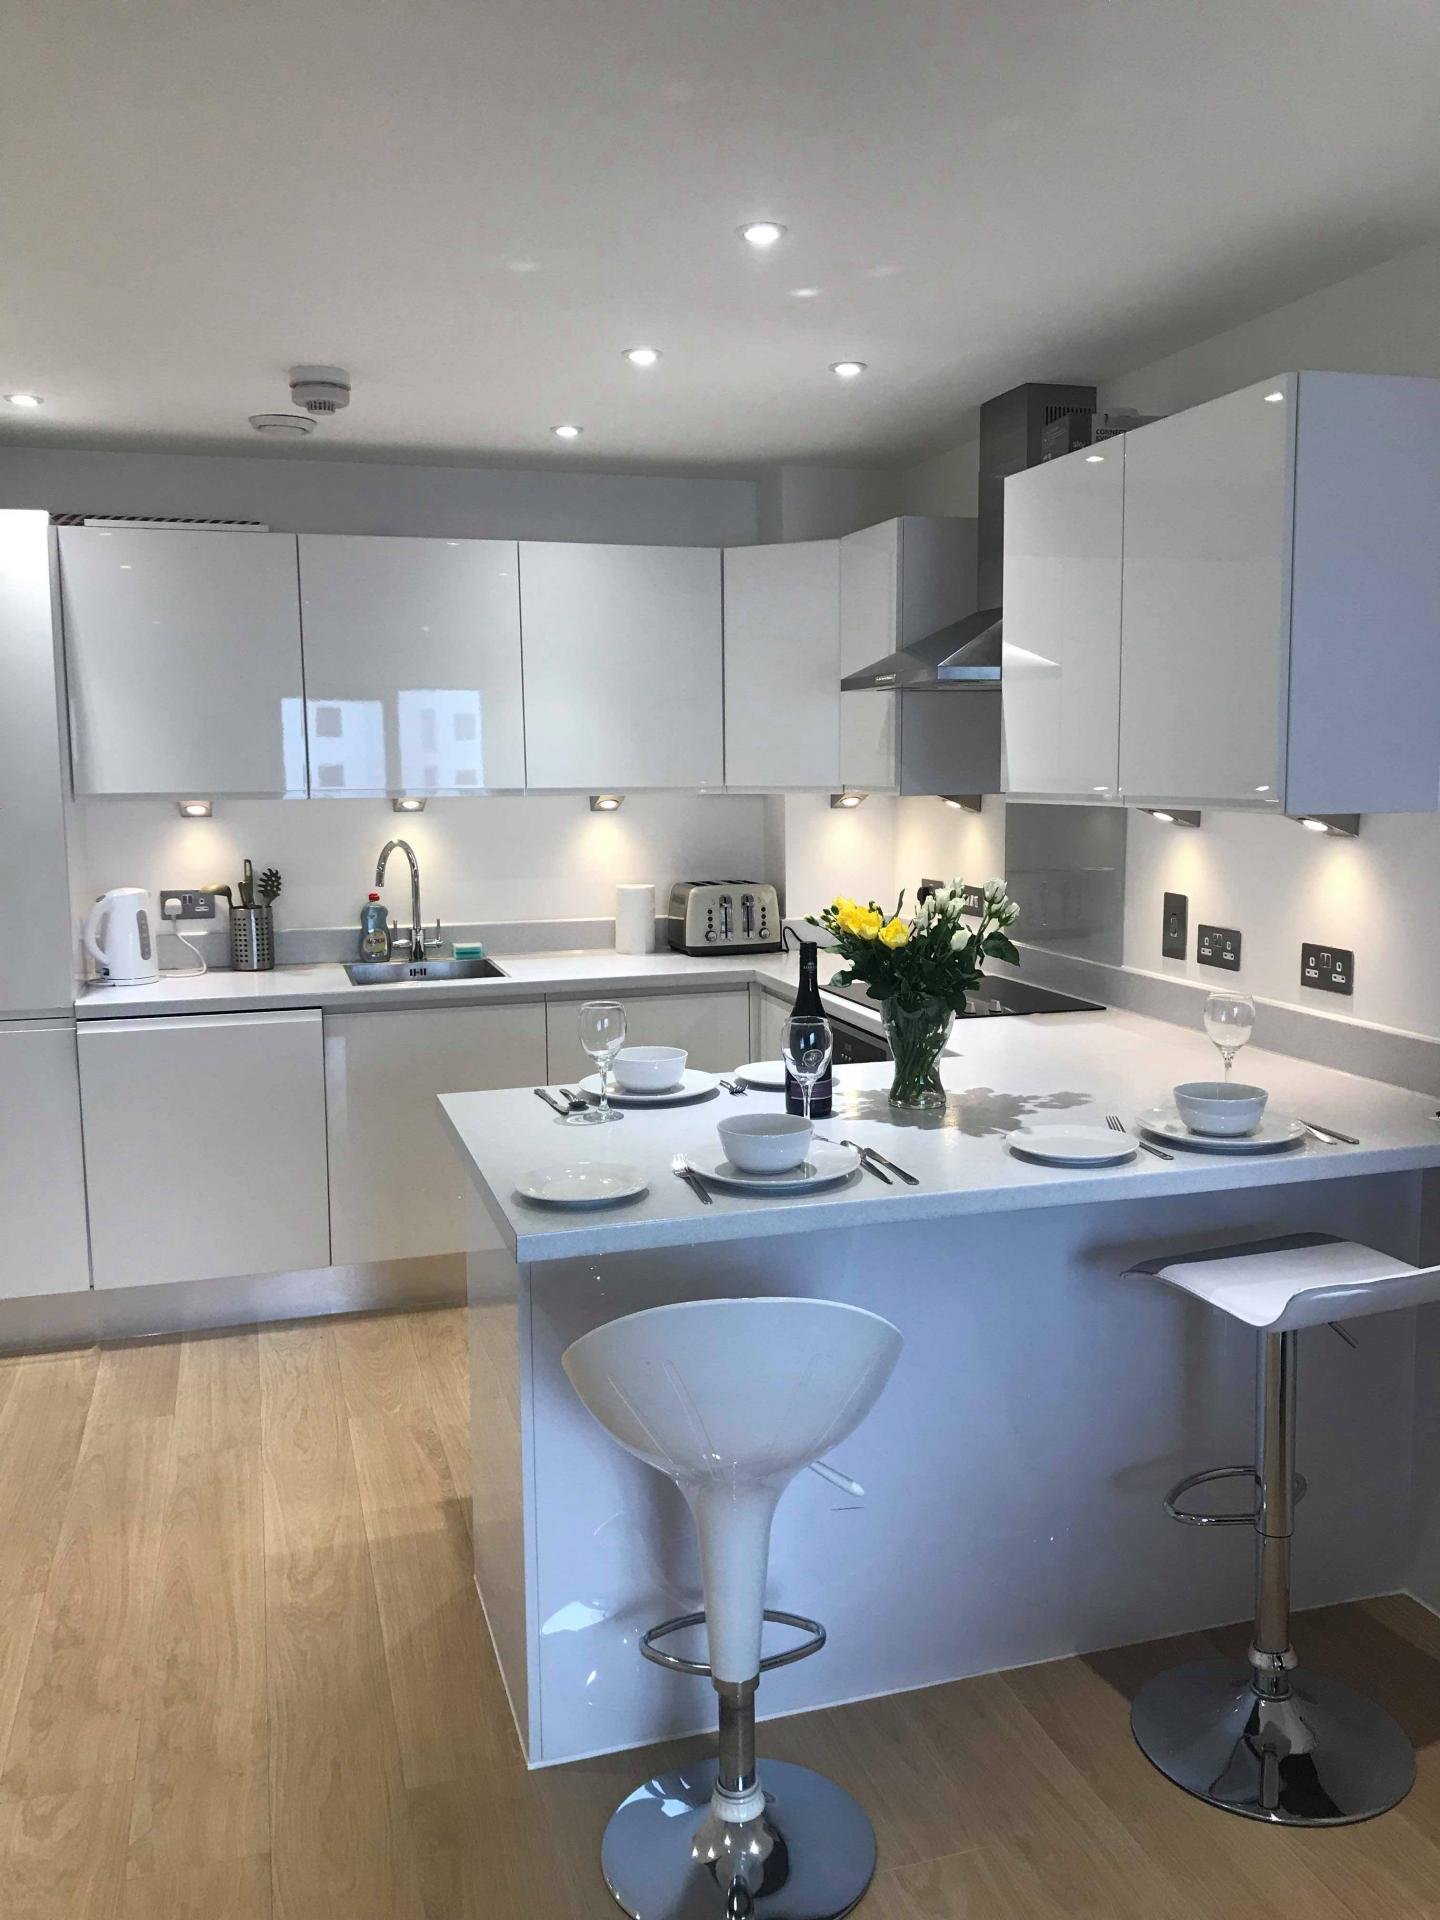 Kitchen at Ocean Village Serviced Apartments, Ocean Village, Southampton - Citybase Apartments